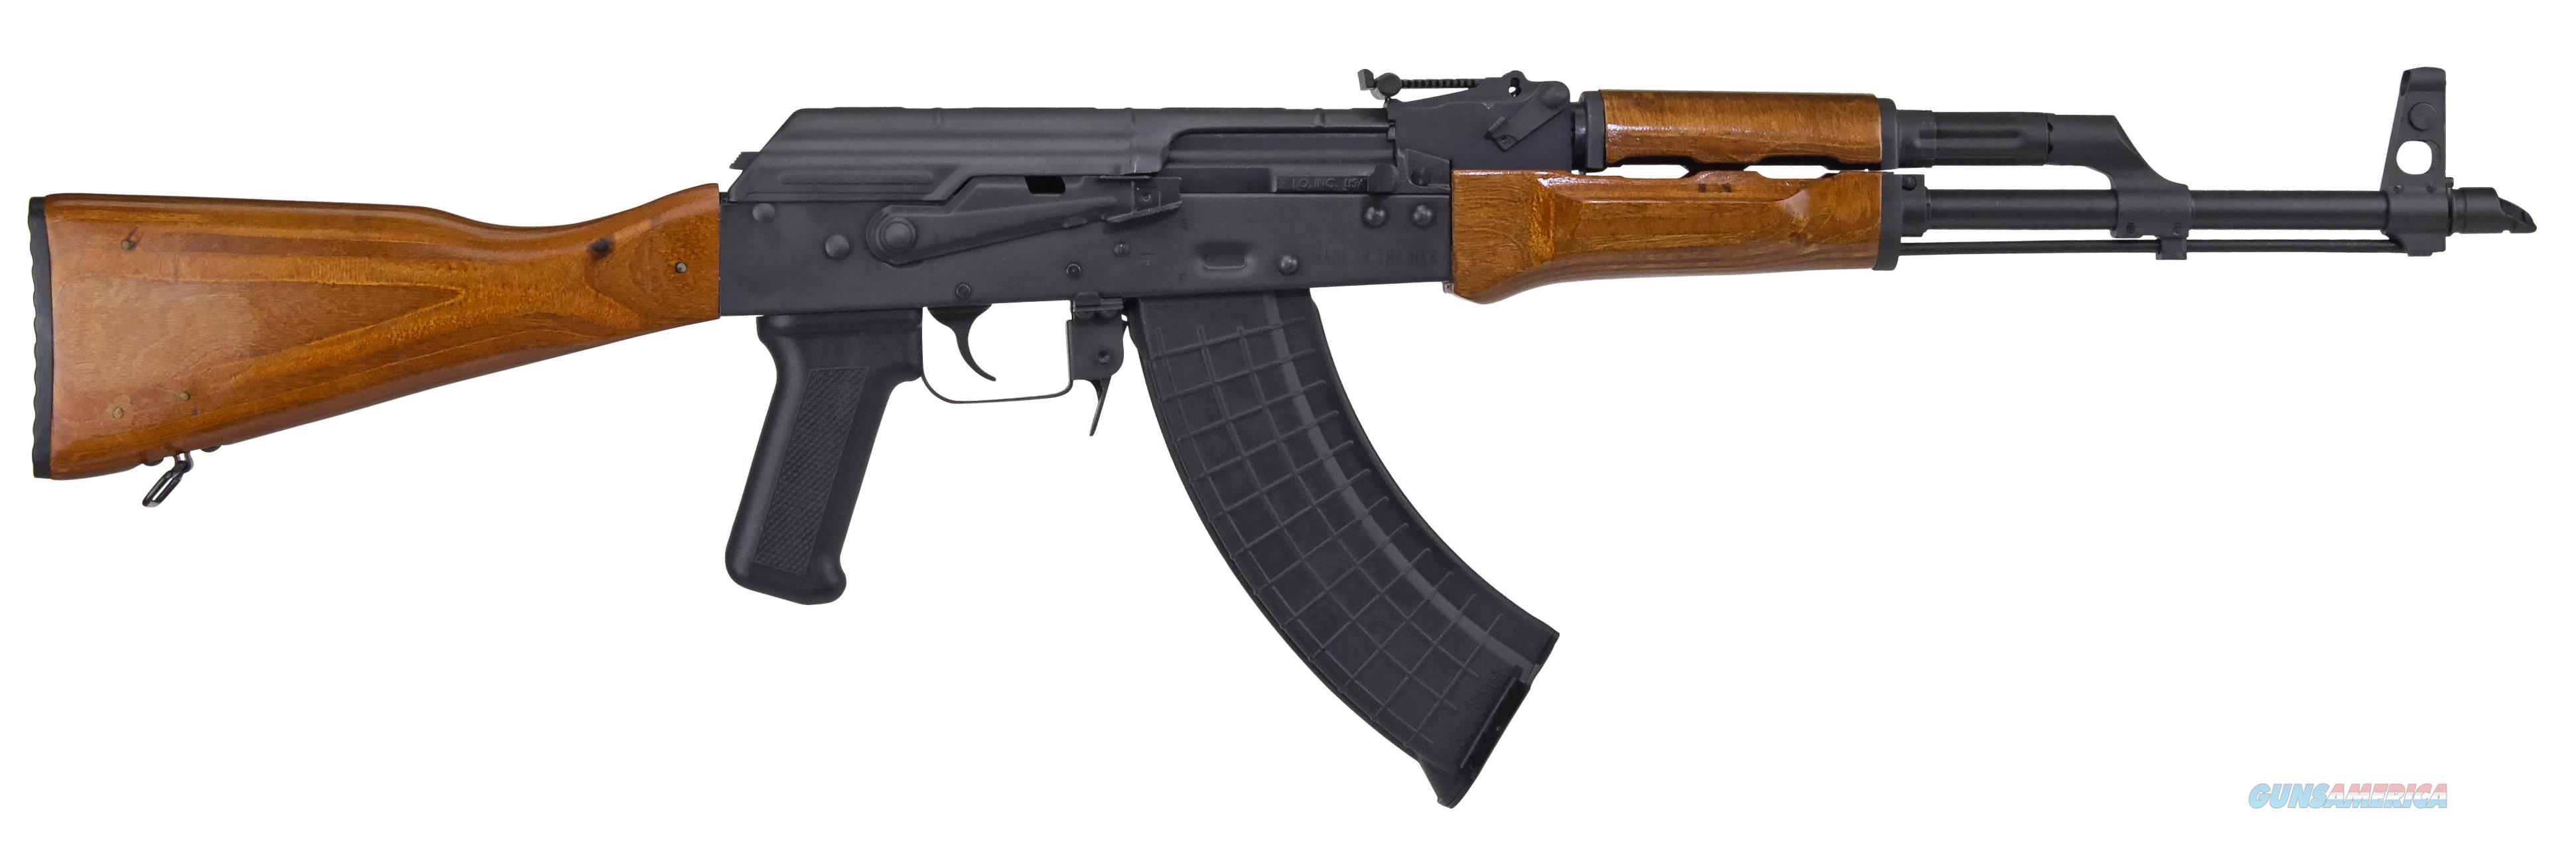 "I.O. IODM2009 AKM247C TACTICAL RIFLE SEMI-AUTOMATIC 7.62X39MM 16.5"" 30+1 FOLDING IODM2009  Guns > Rifles > AK-47 Rifles (and copies) > Folding Stock"